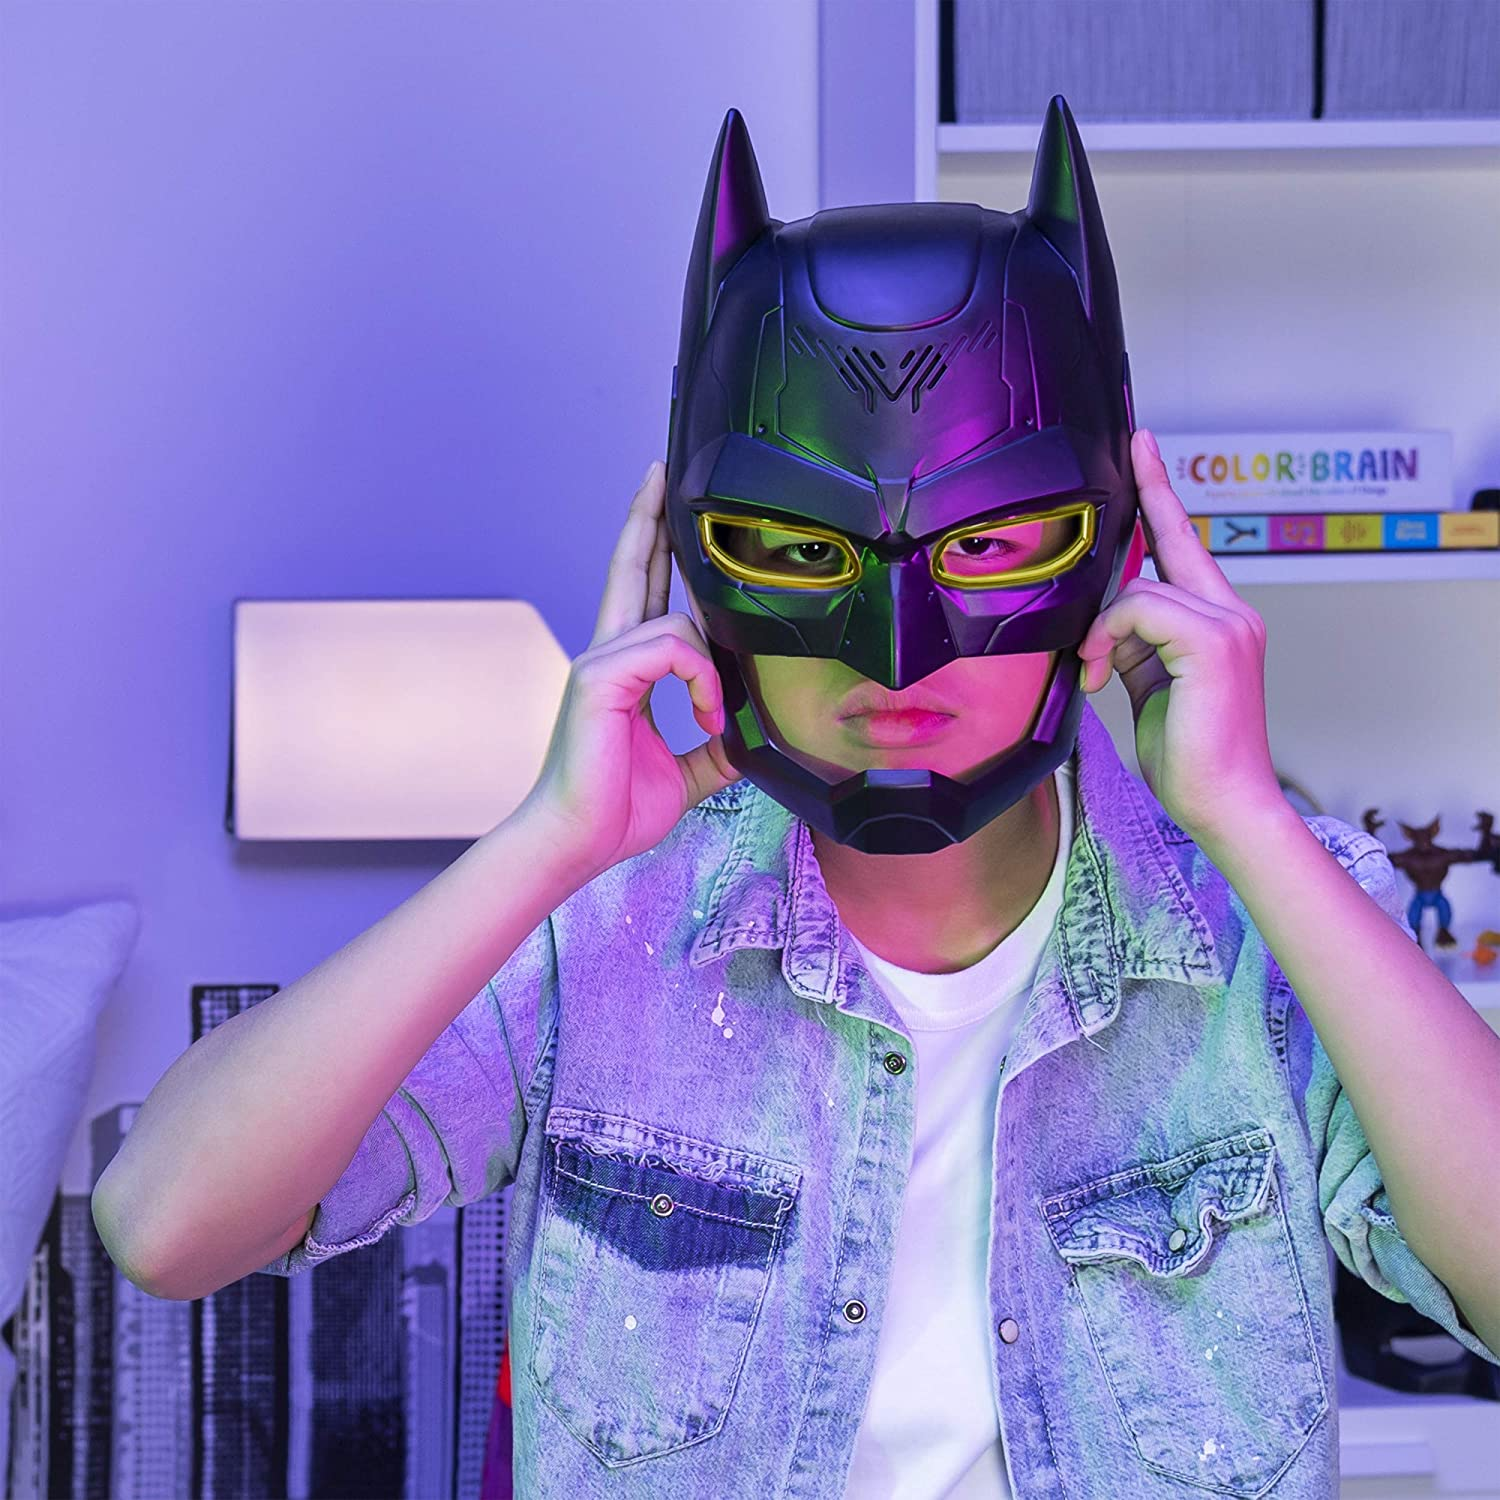 New in Box BATMAN Voice Changing Mask with Over 15 Phrases for Kids Aged 4